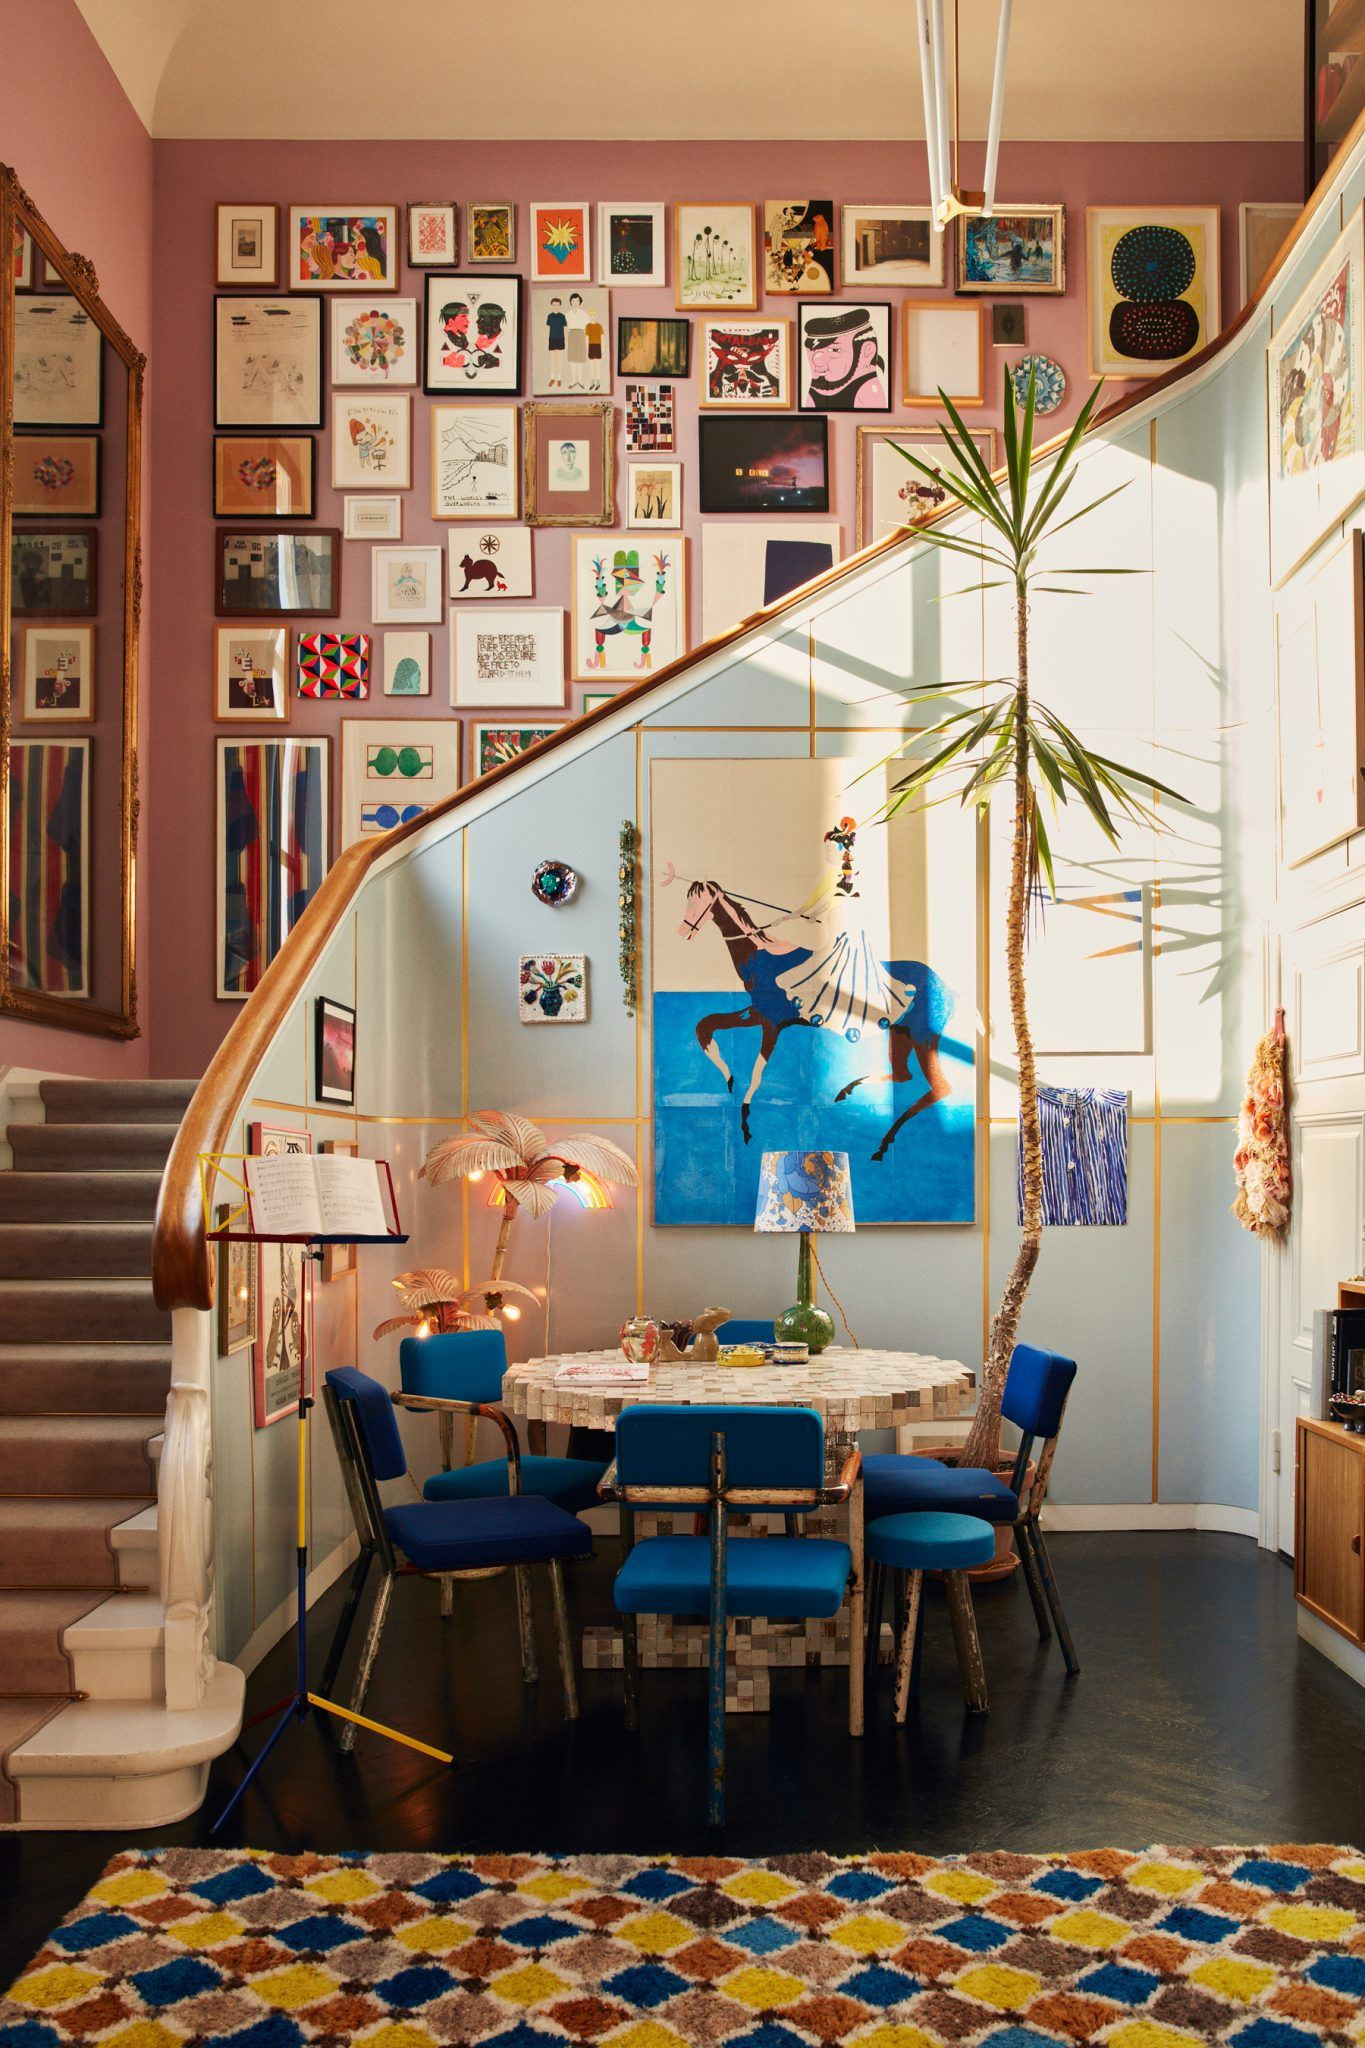 Photo of Blue and pink living space with large gallery wall in the staircase in a colorful art-filled home